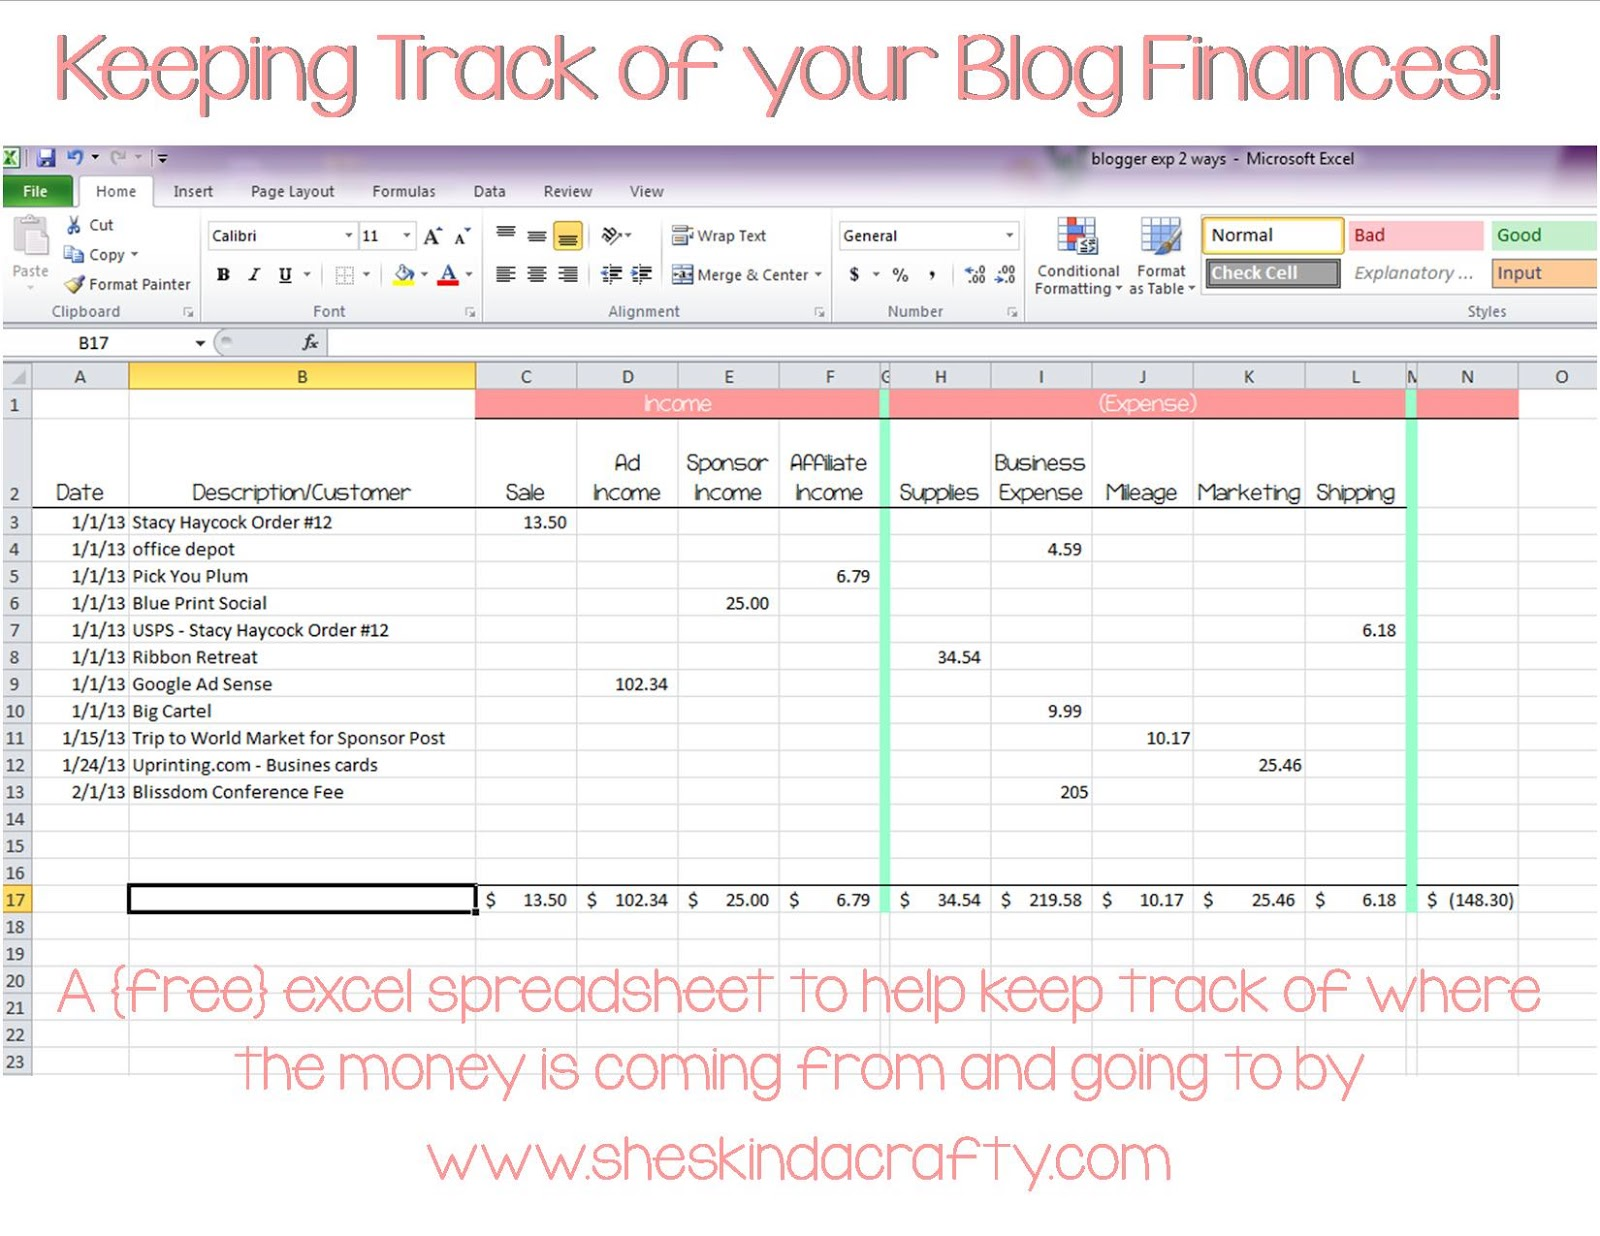 Free Excel Spreadsheet For Tracking Income And Expenses With Excel Spreadsheet For Tracking Income And Expenses Download For Free